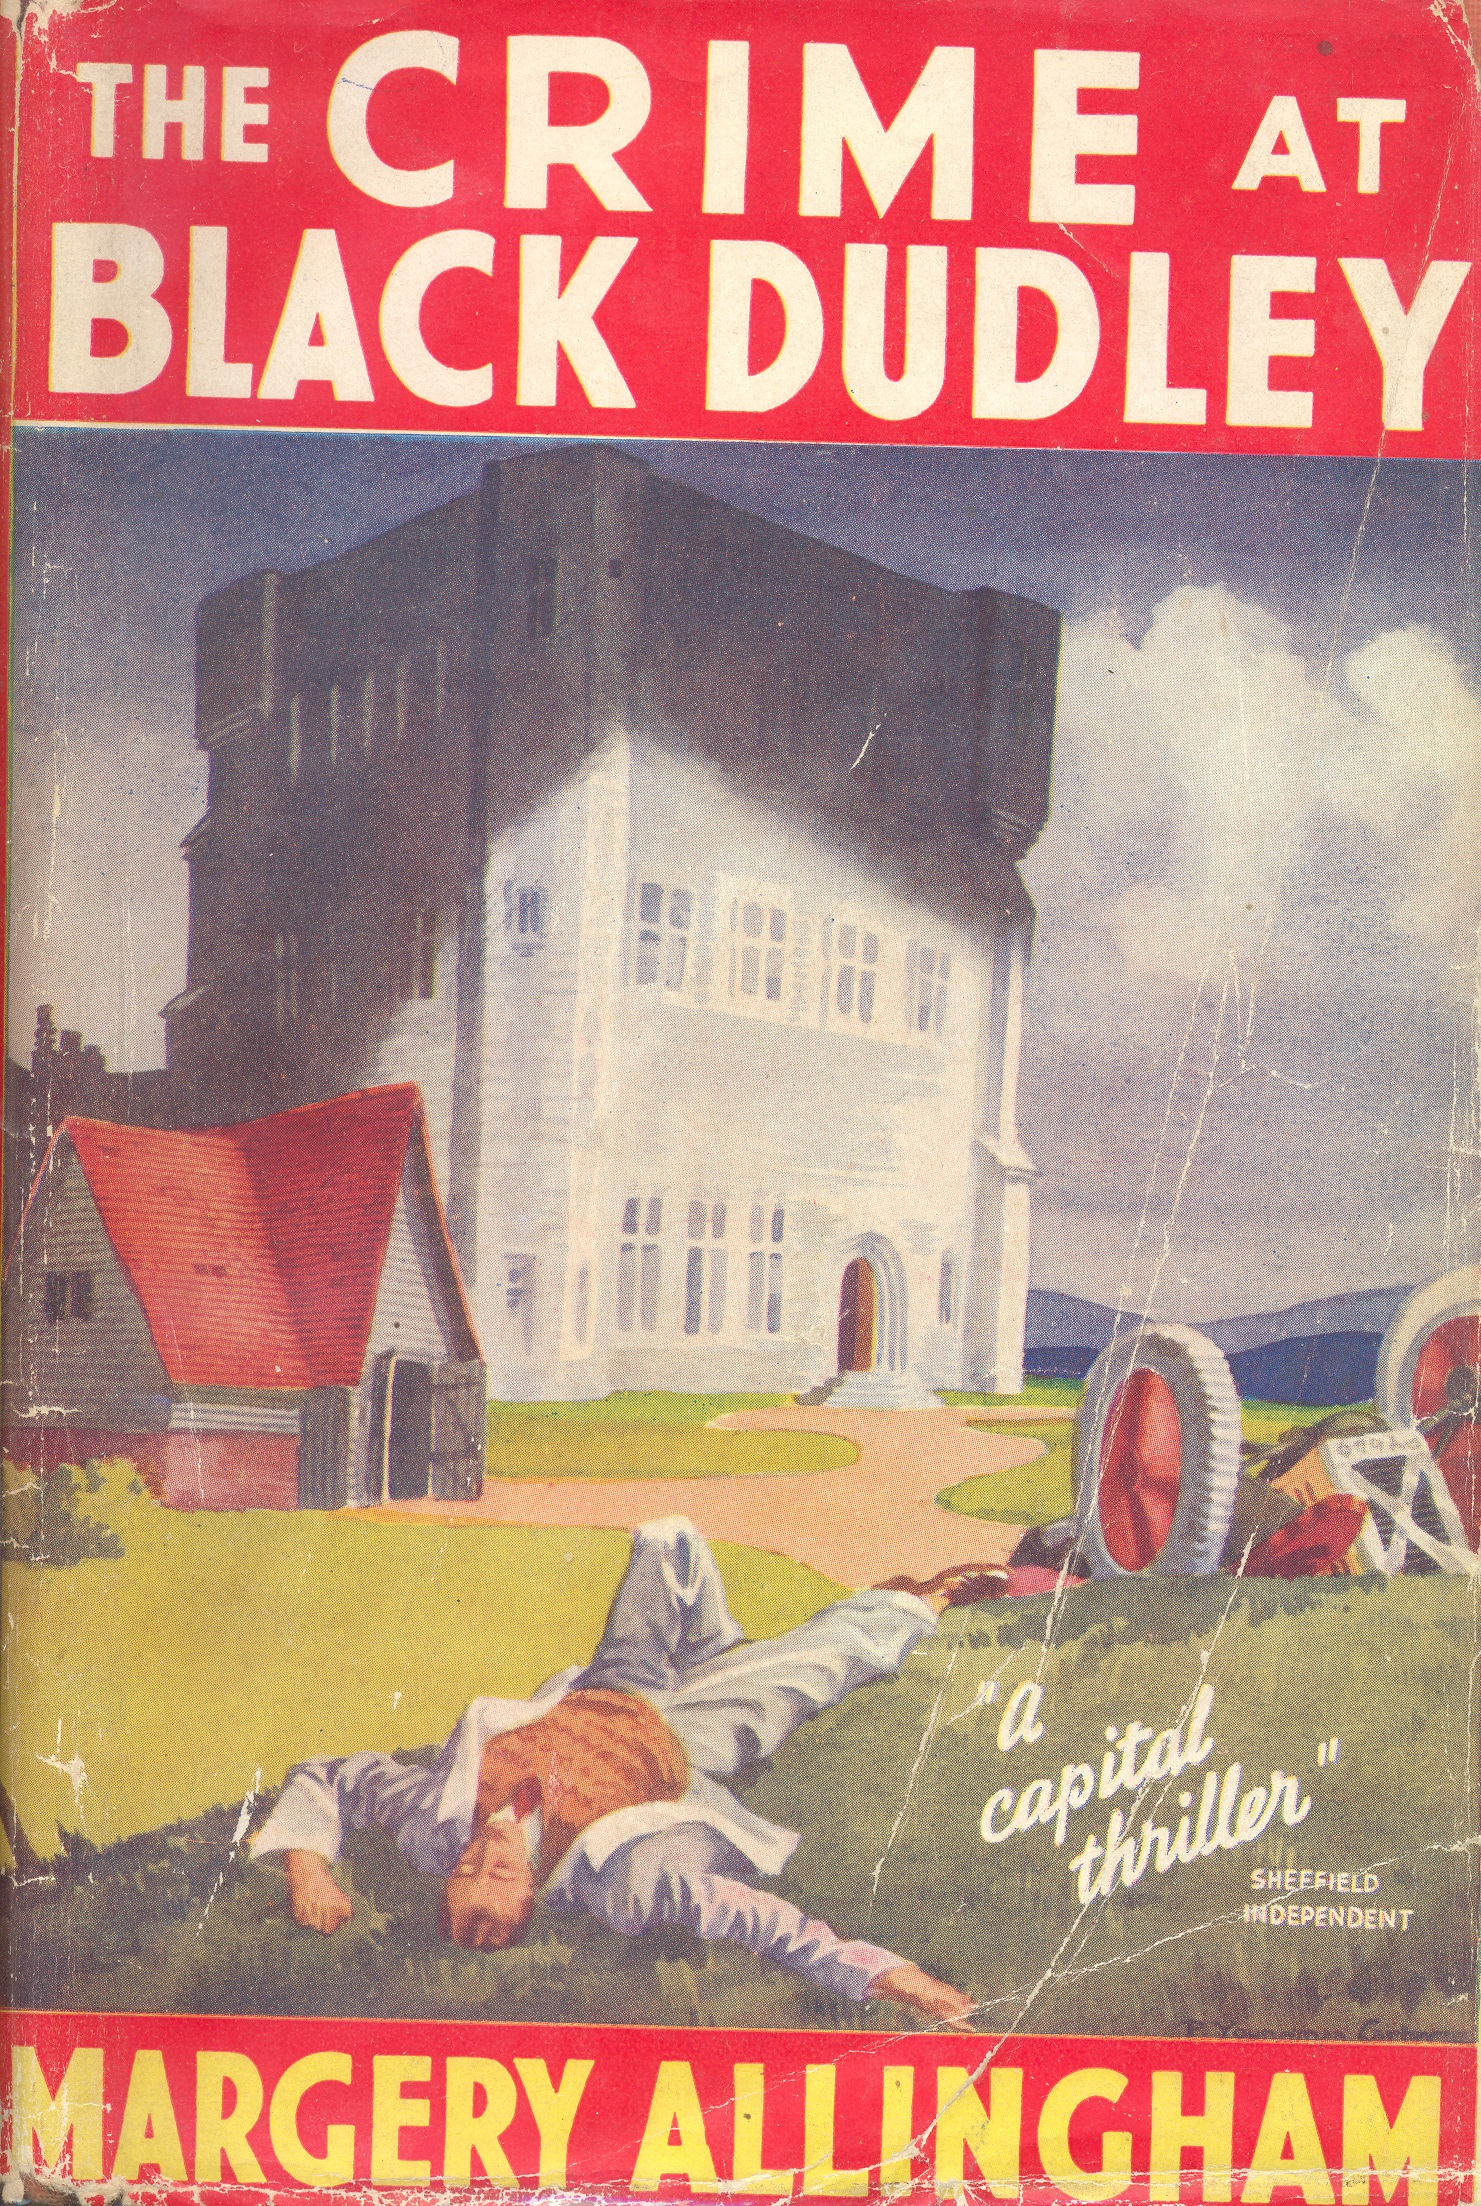 Book cover showing castle with the body of a man and a wrecked car in the foreground